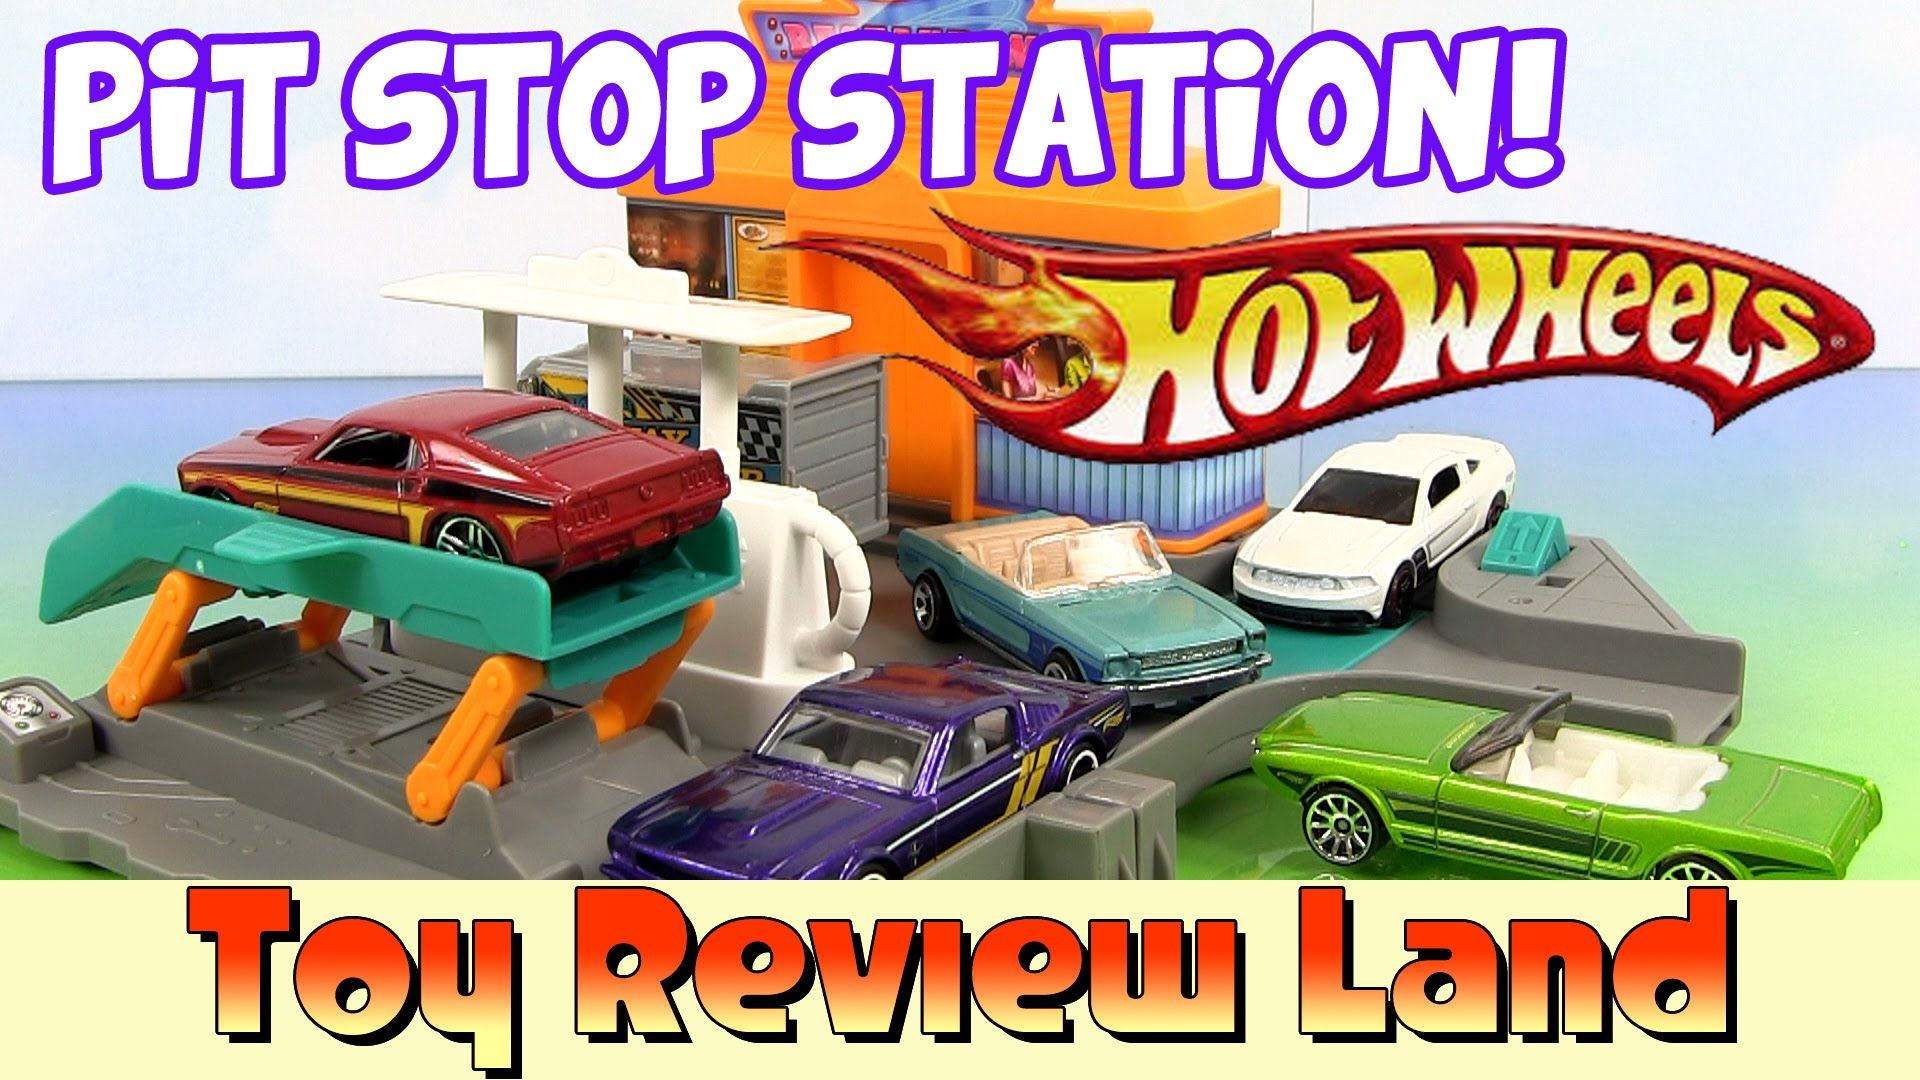 Hotwheels Fill Up Station and Mustang 5 Pack Car Toys Box Opening!